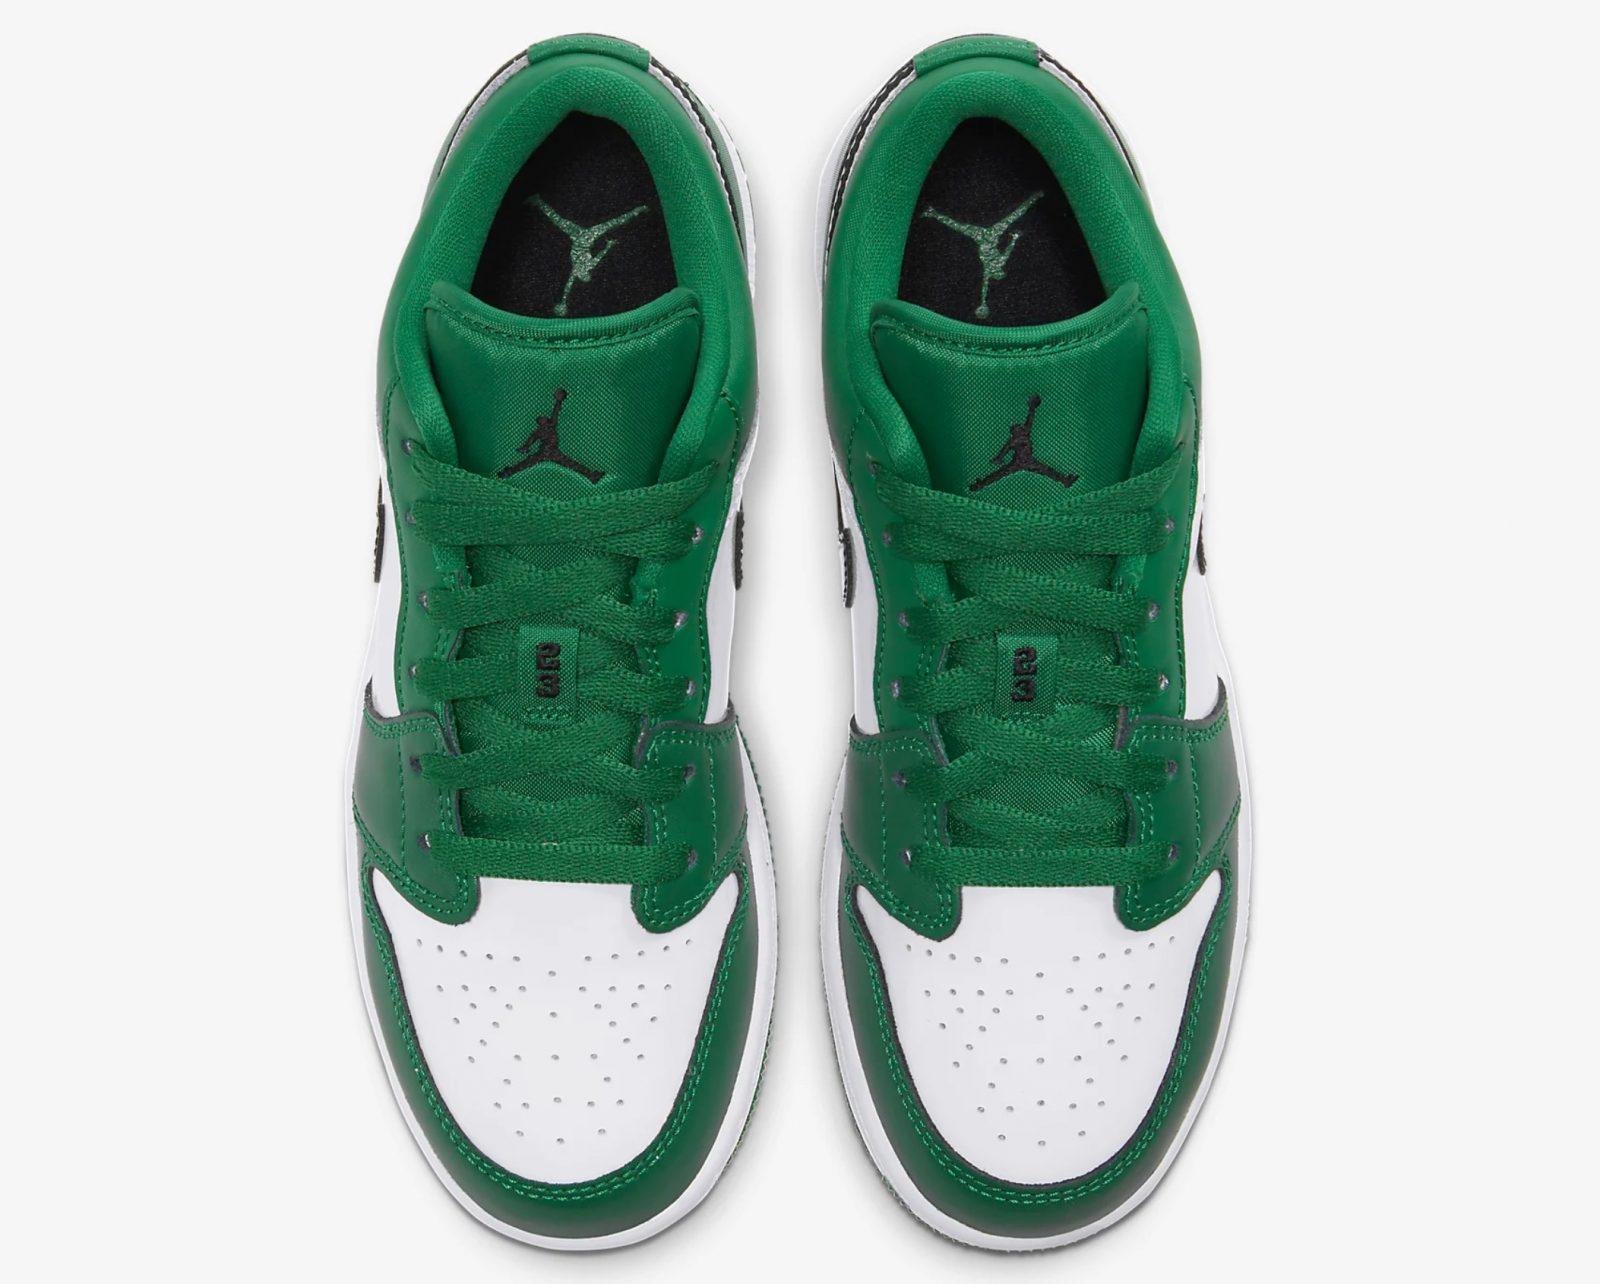 Air Jordan 1 Low Pine Green 553560-301 laces